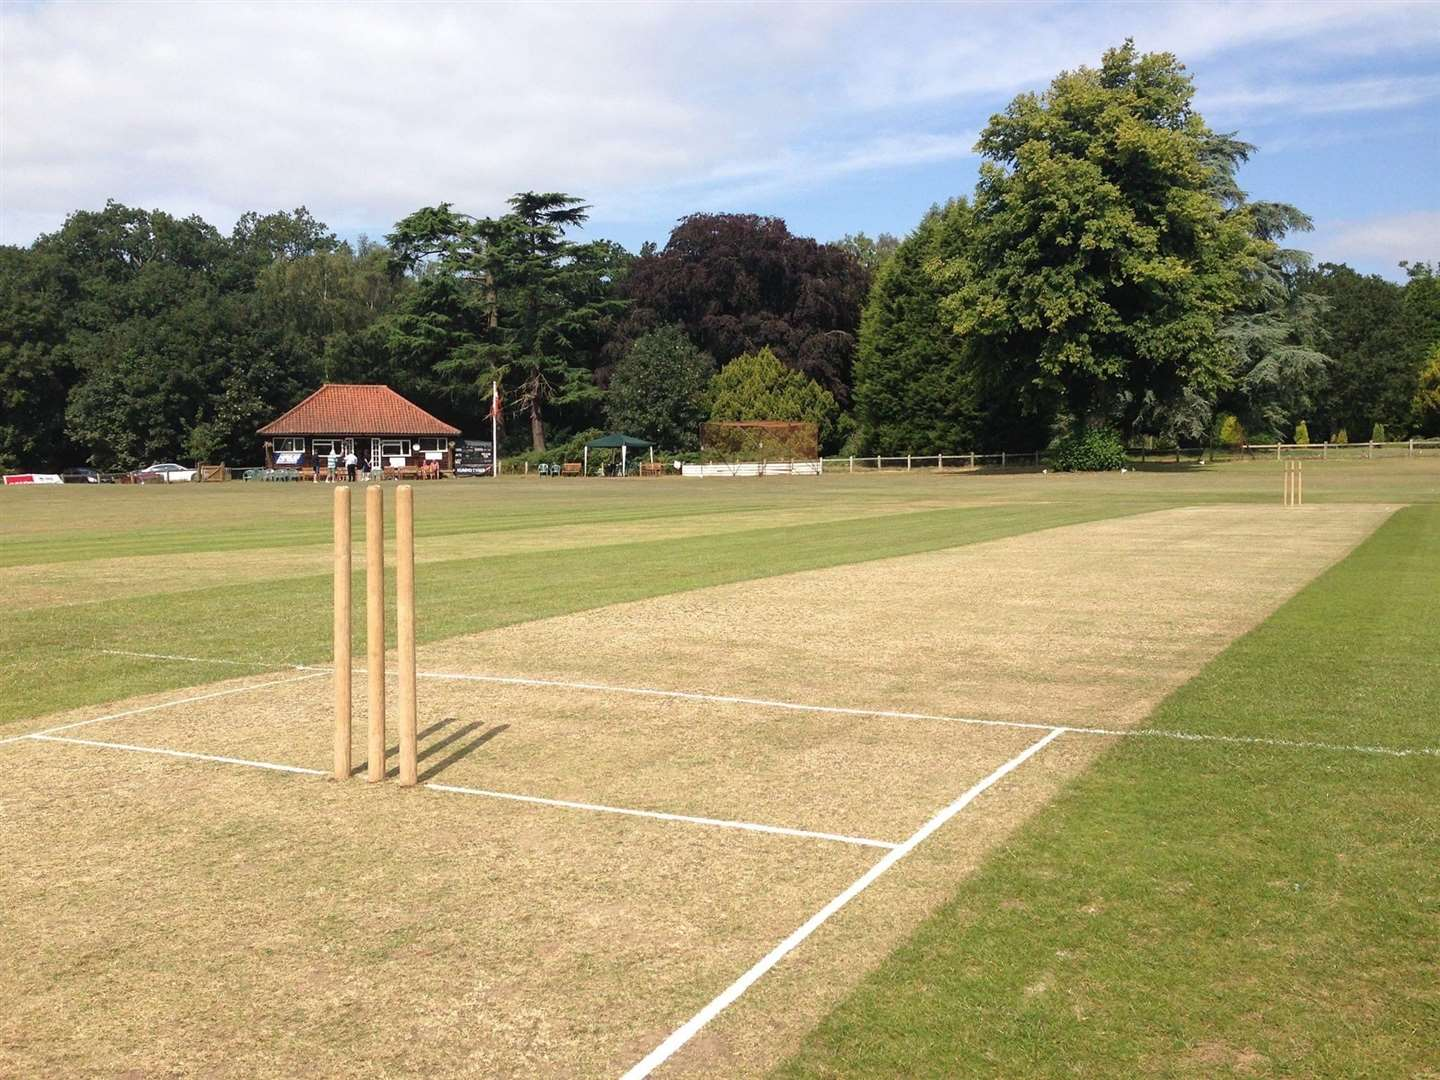 The picturesque surroundings at Sandringham Cricket Club. (50094324)